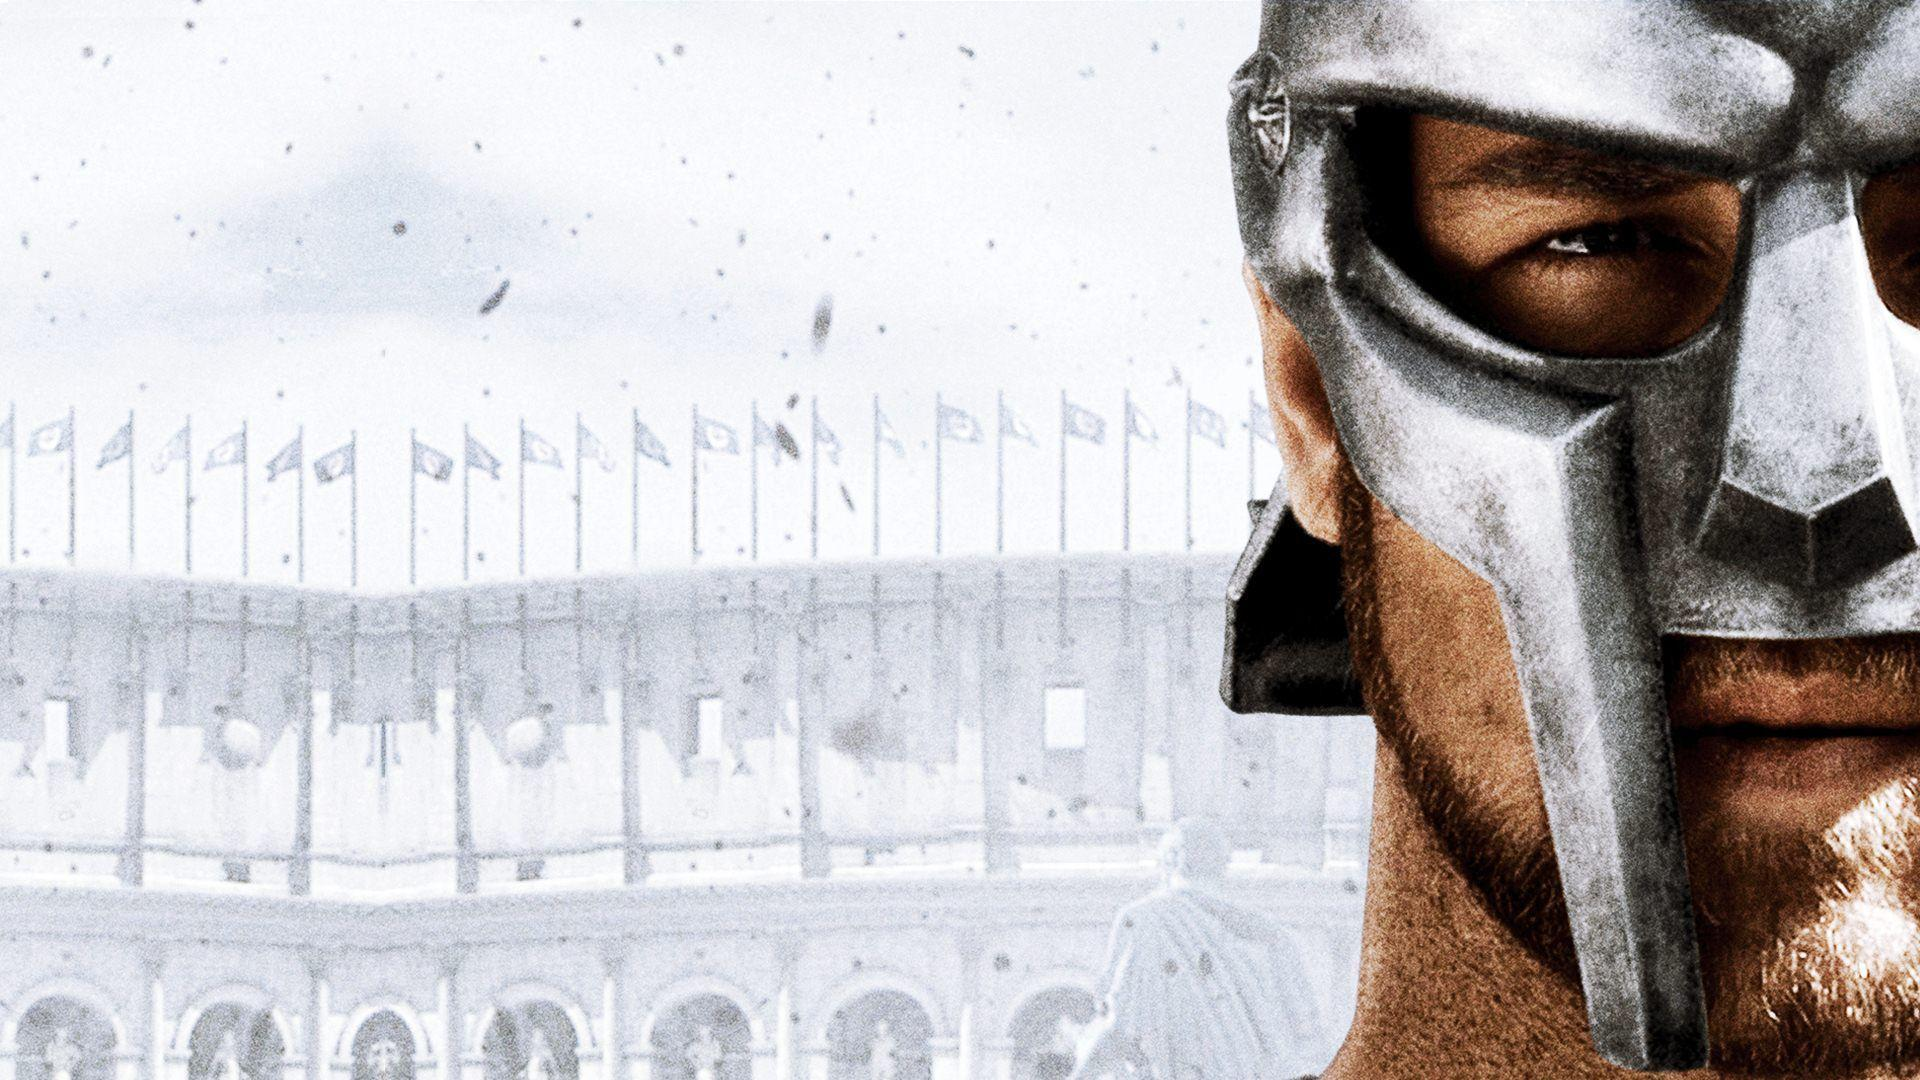 Gladiator Free Download Wallpapers | Download High Quality ...